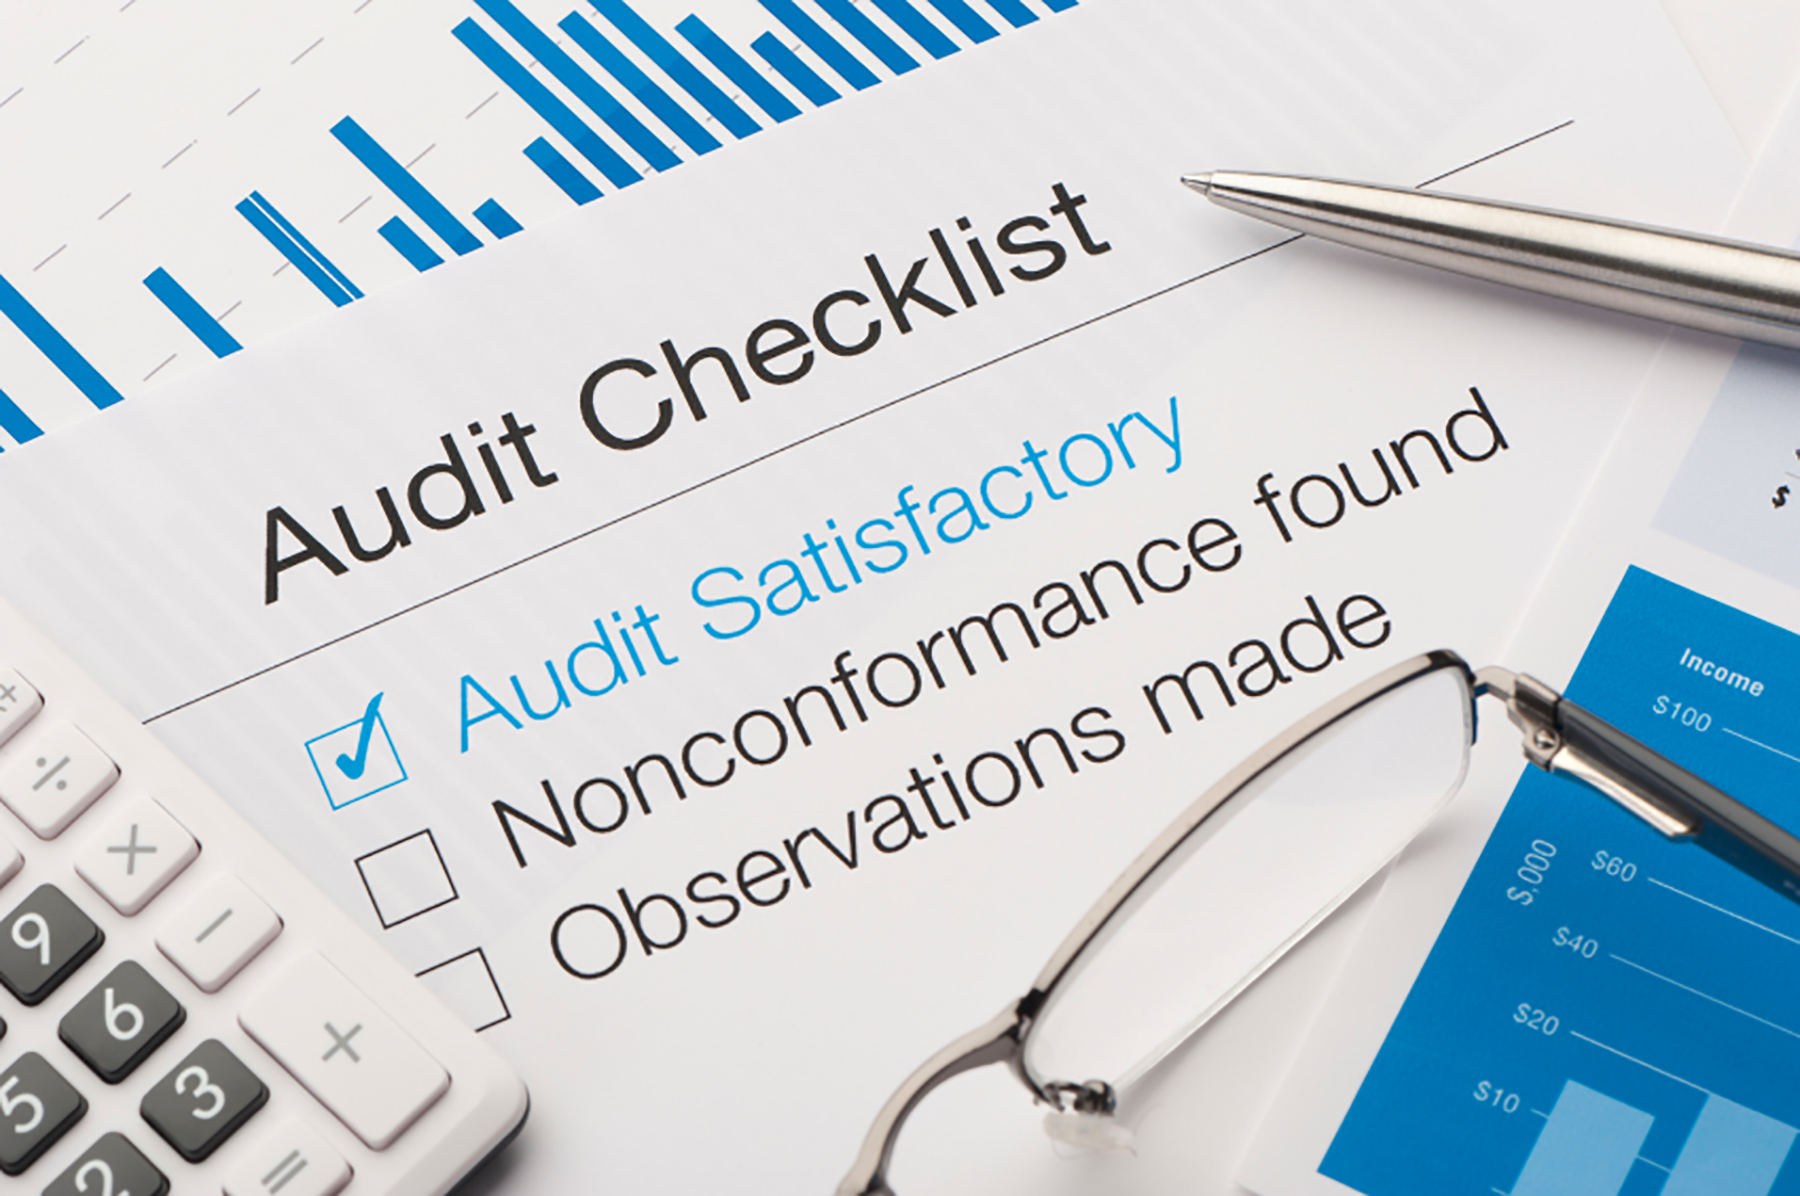 Investment Companies: Tips on Choosing Auditors and Tax Preparers